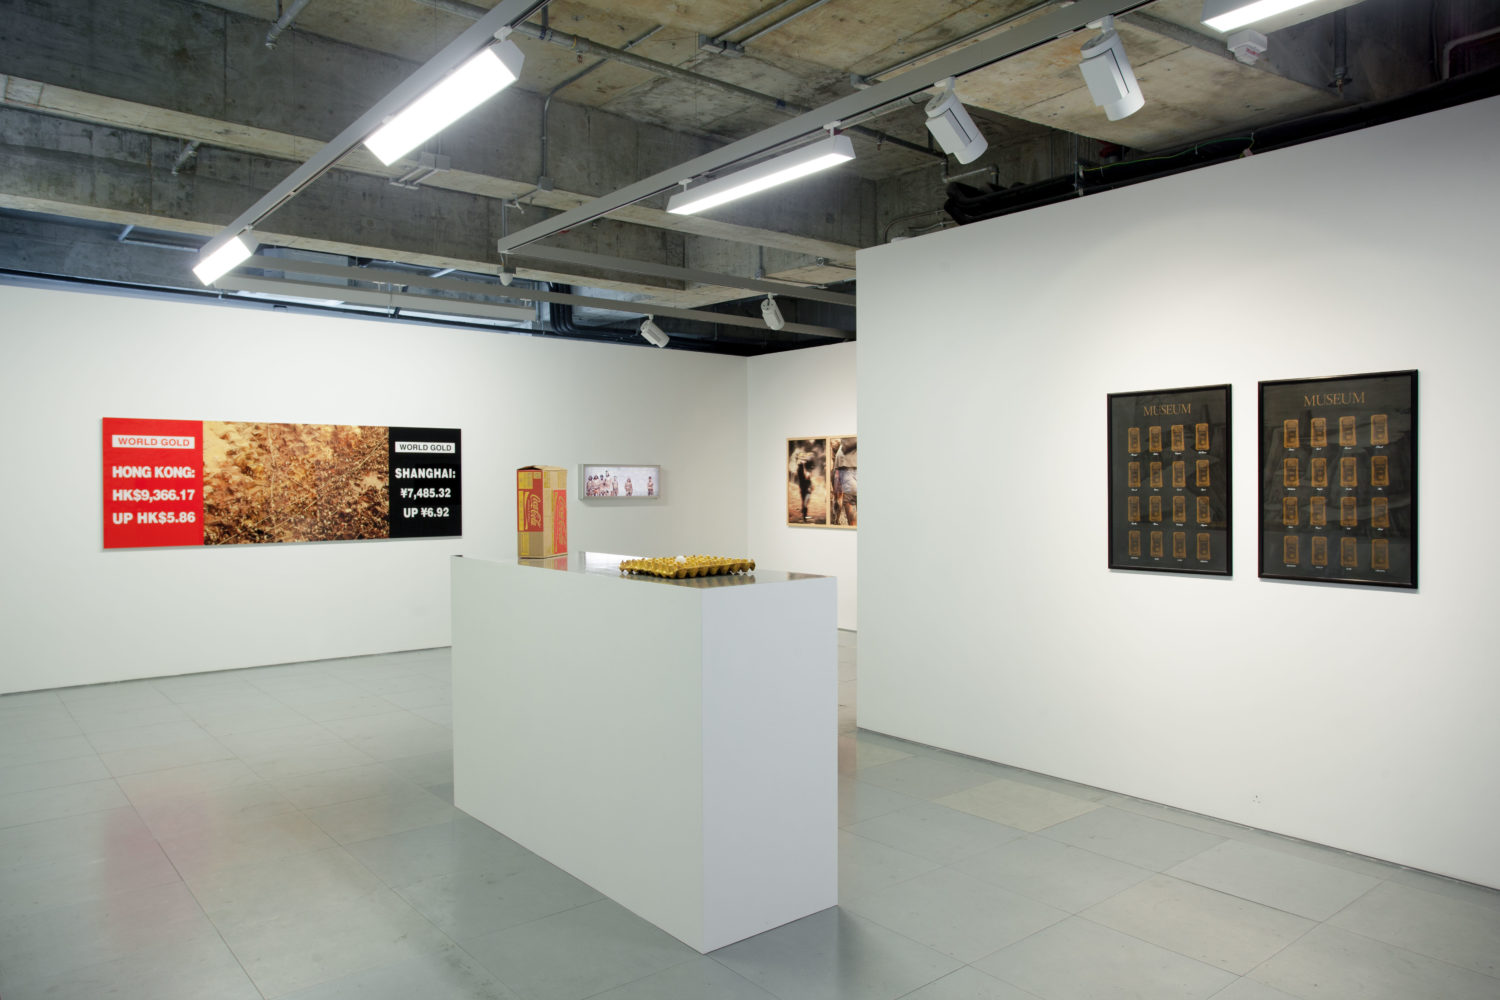 D Art Exhibition Hong Kong : Gagosian gallery hong kong hong kong « caruso st john architects